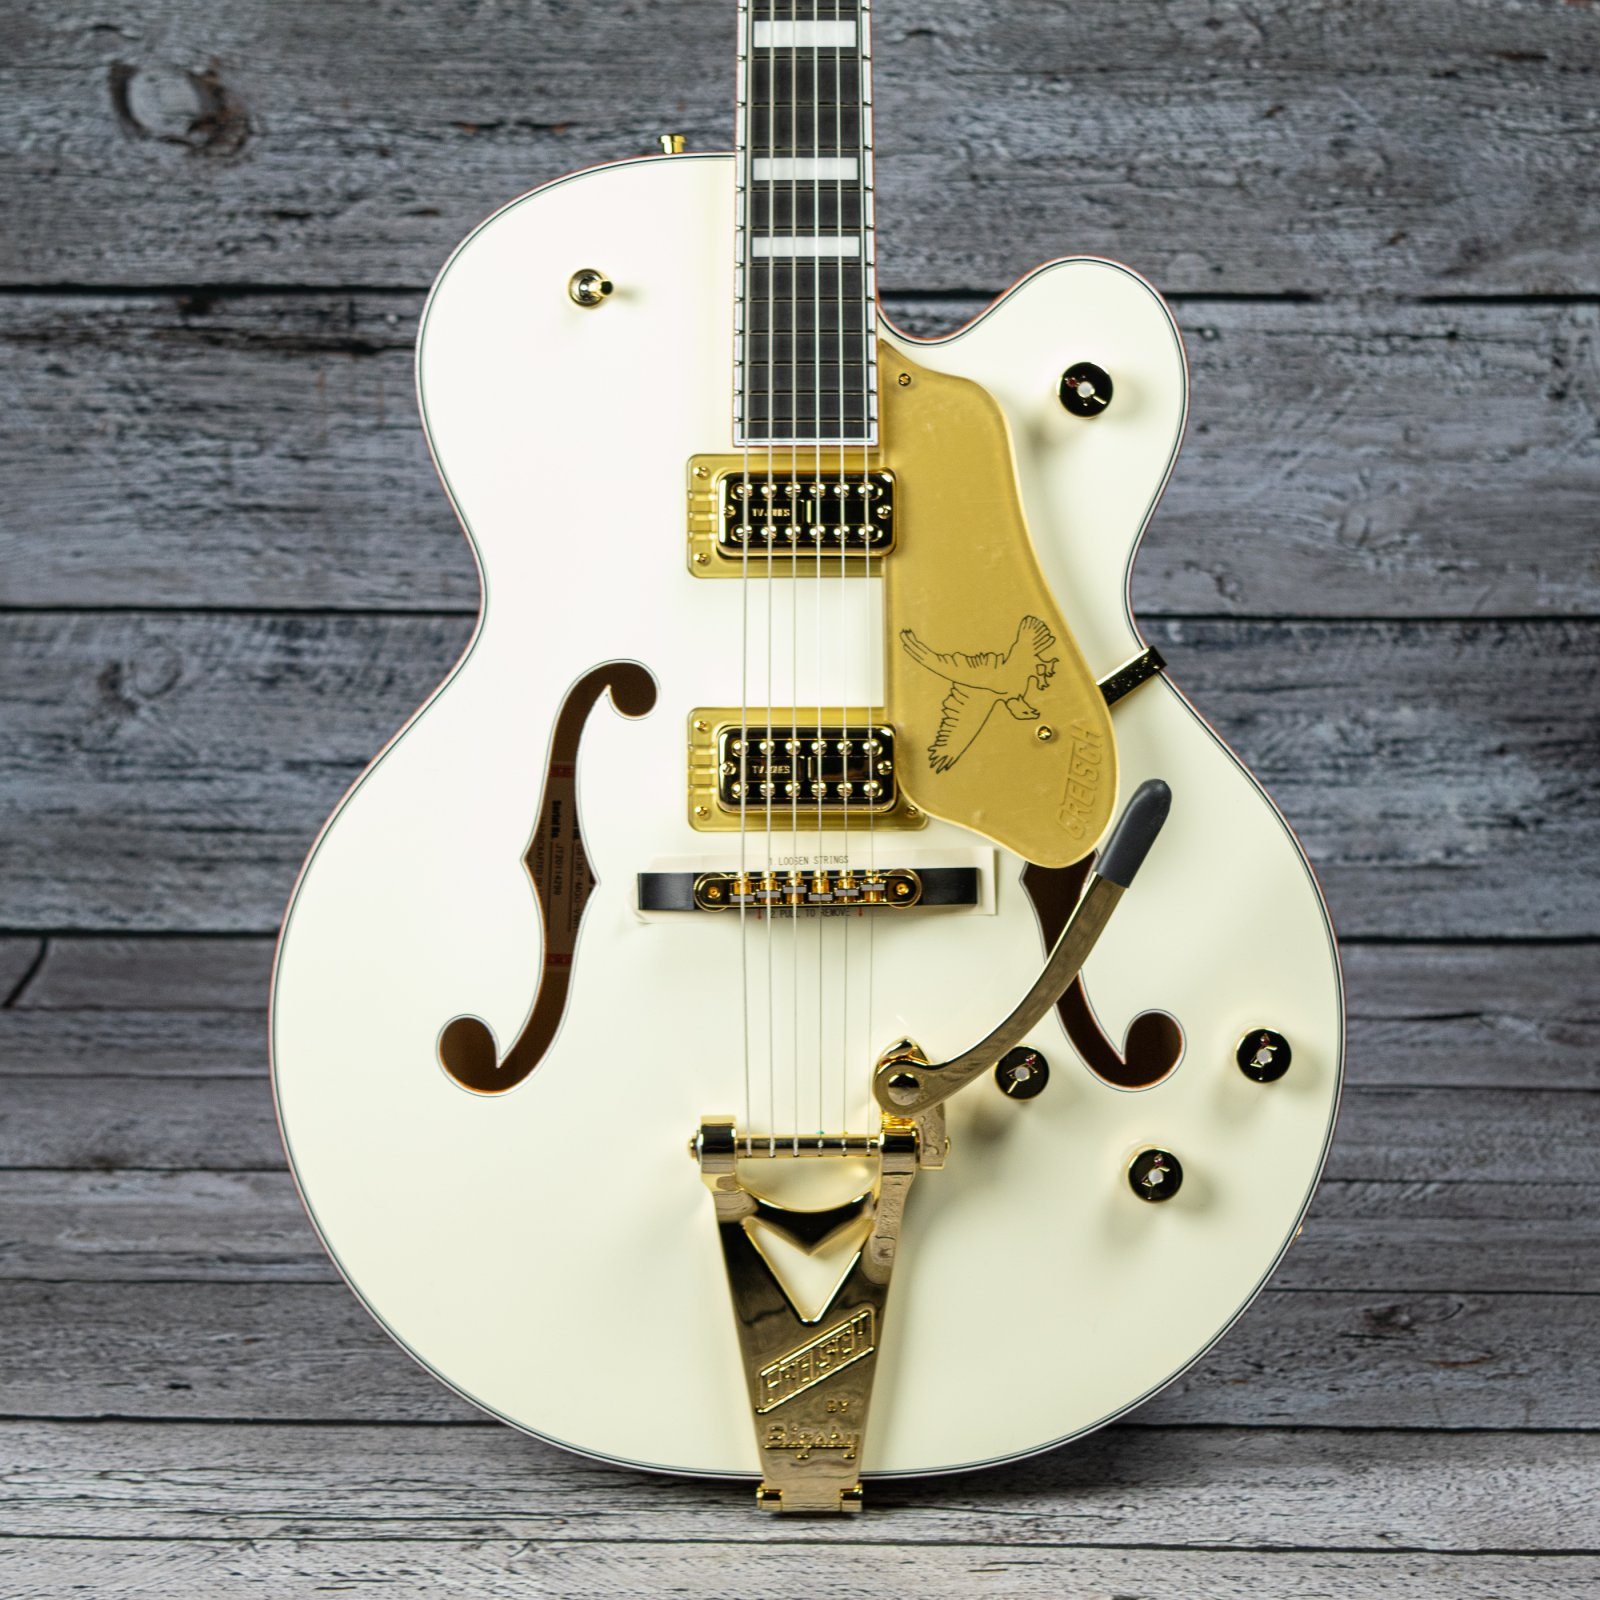 Gretsch G6136T-MGC Michael Guy Chislett Signature Falcon with Bigsby - Ebony Fingerboard, Vintage White (Serial: JT20114299)